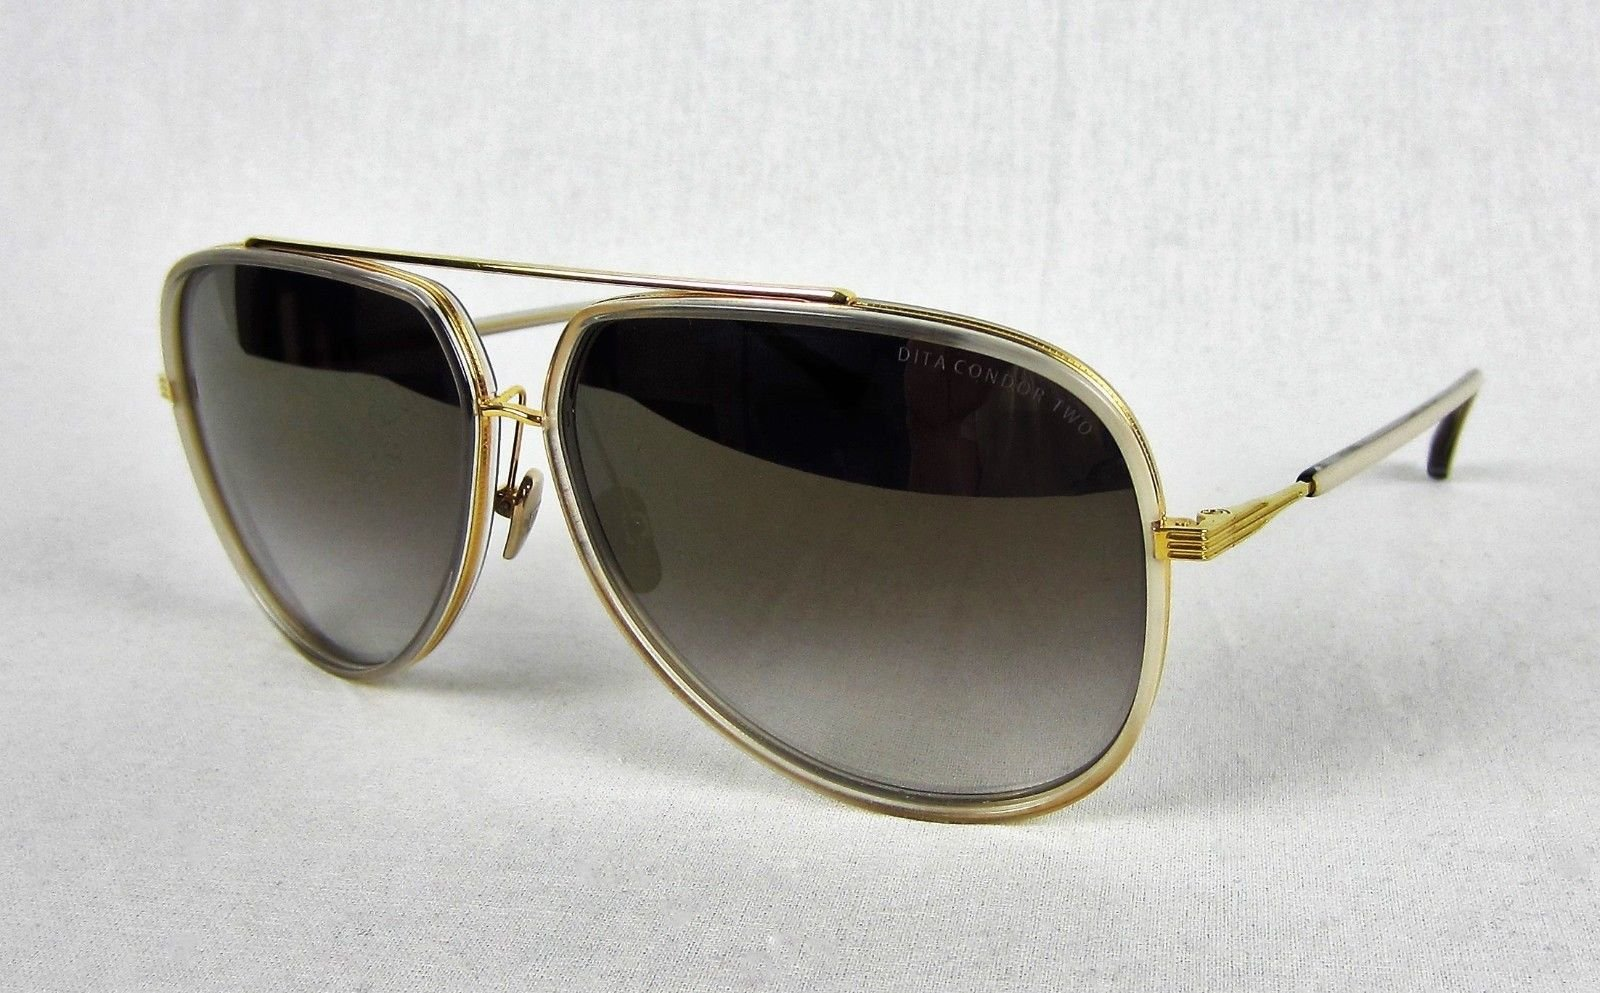 c026fc6242a6 Details about Dita Condor Two 2 Sunglasses Aviator 18K Gold Cream Grey  Flash Mirrored Lenses